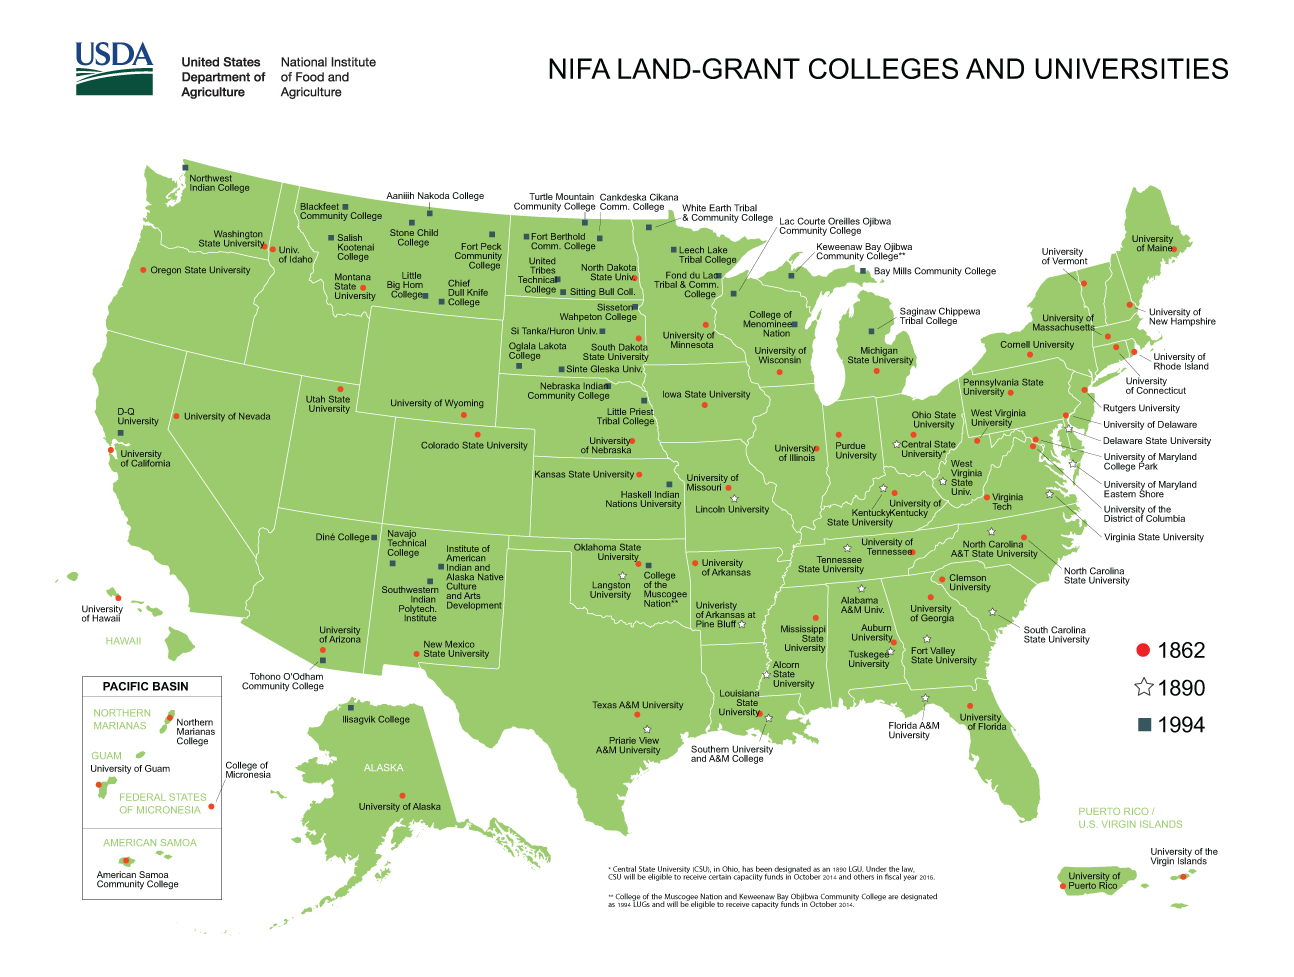 United States Department of Agriculture, National Institute of Food and Agriculture, Land- Grant Colleges and Universities.